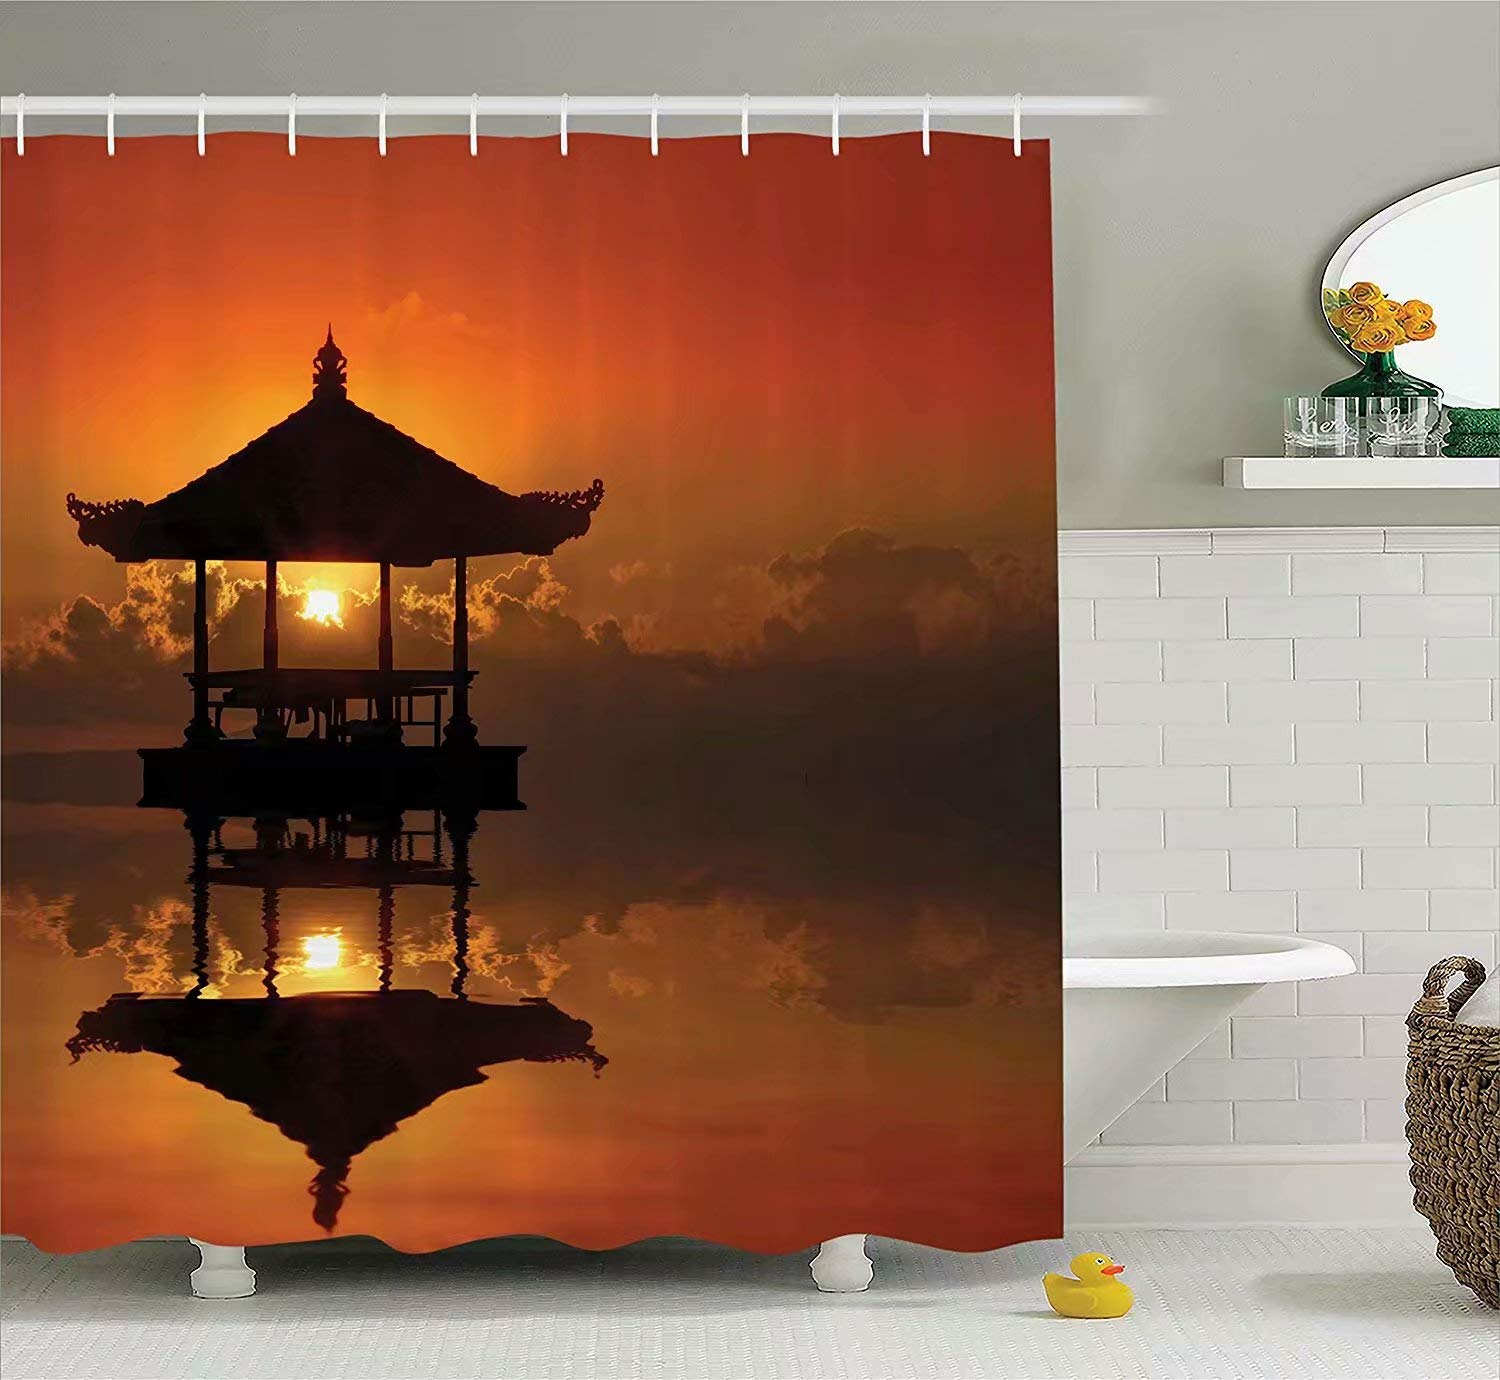 KANATSIU Sunset in Bali Beach Reflection Romance Horizon Summer Cloudscape Shower Curtain 12 Plactic Hooks,100% Made Polyester,Mildew Resistant & Machine Washable,Width x Height is 60x72